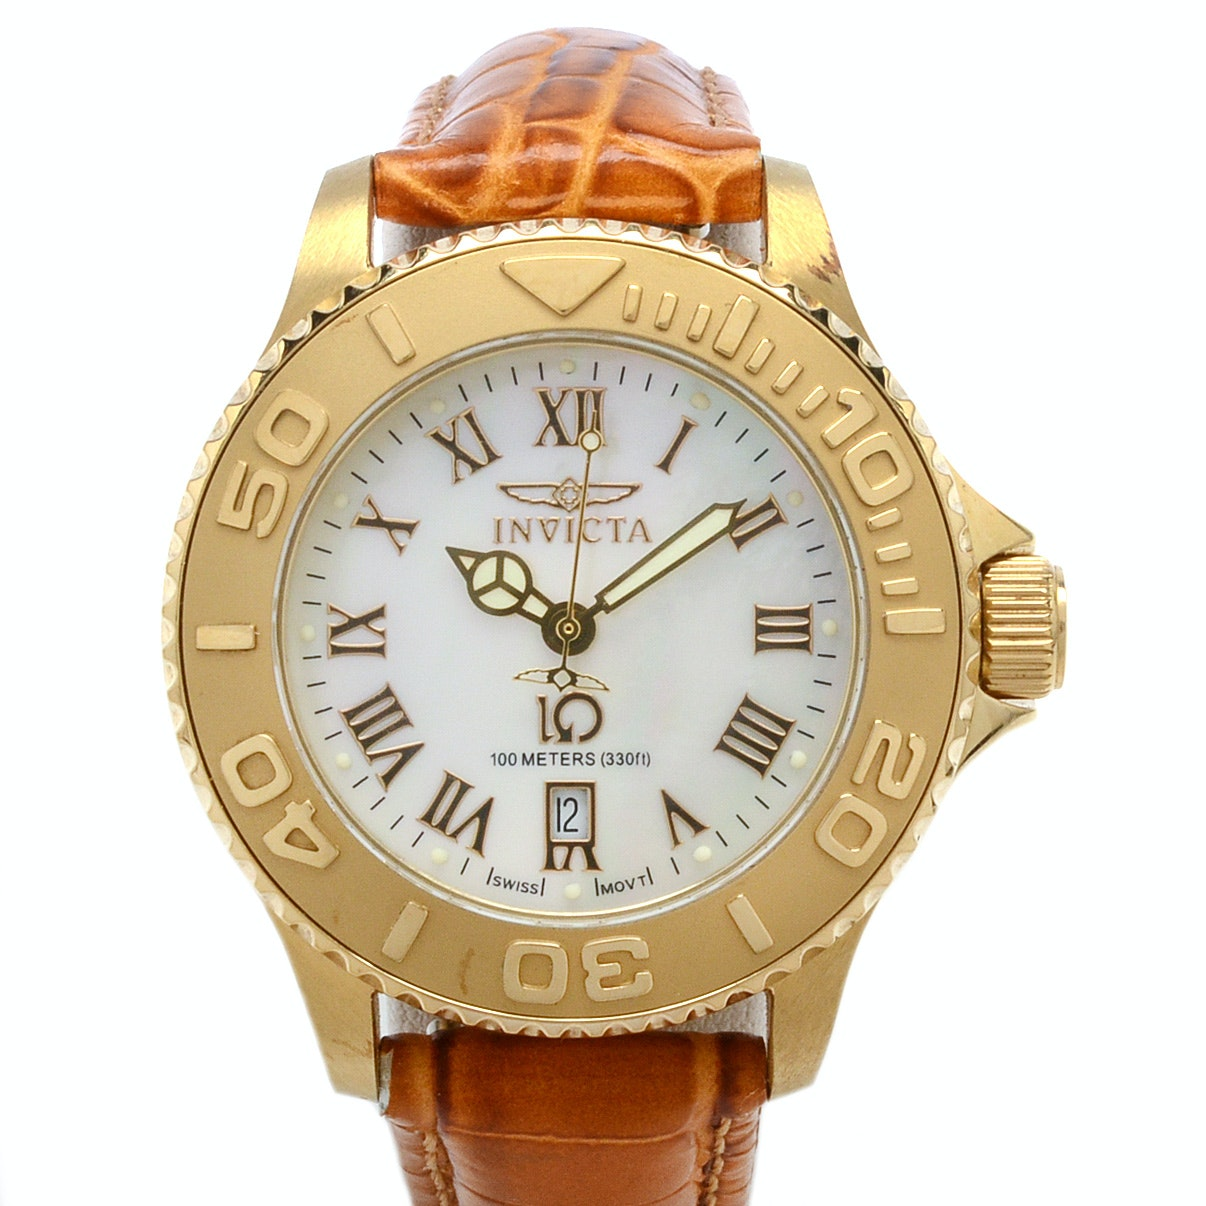 Invicta Wildflower Wristwatch With Leather Band